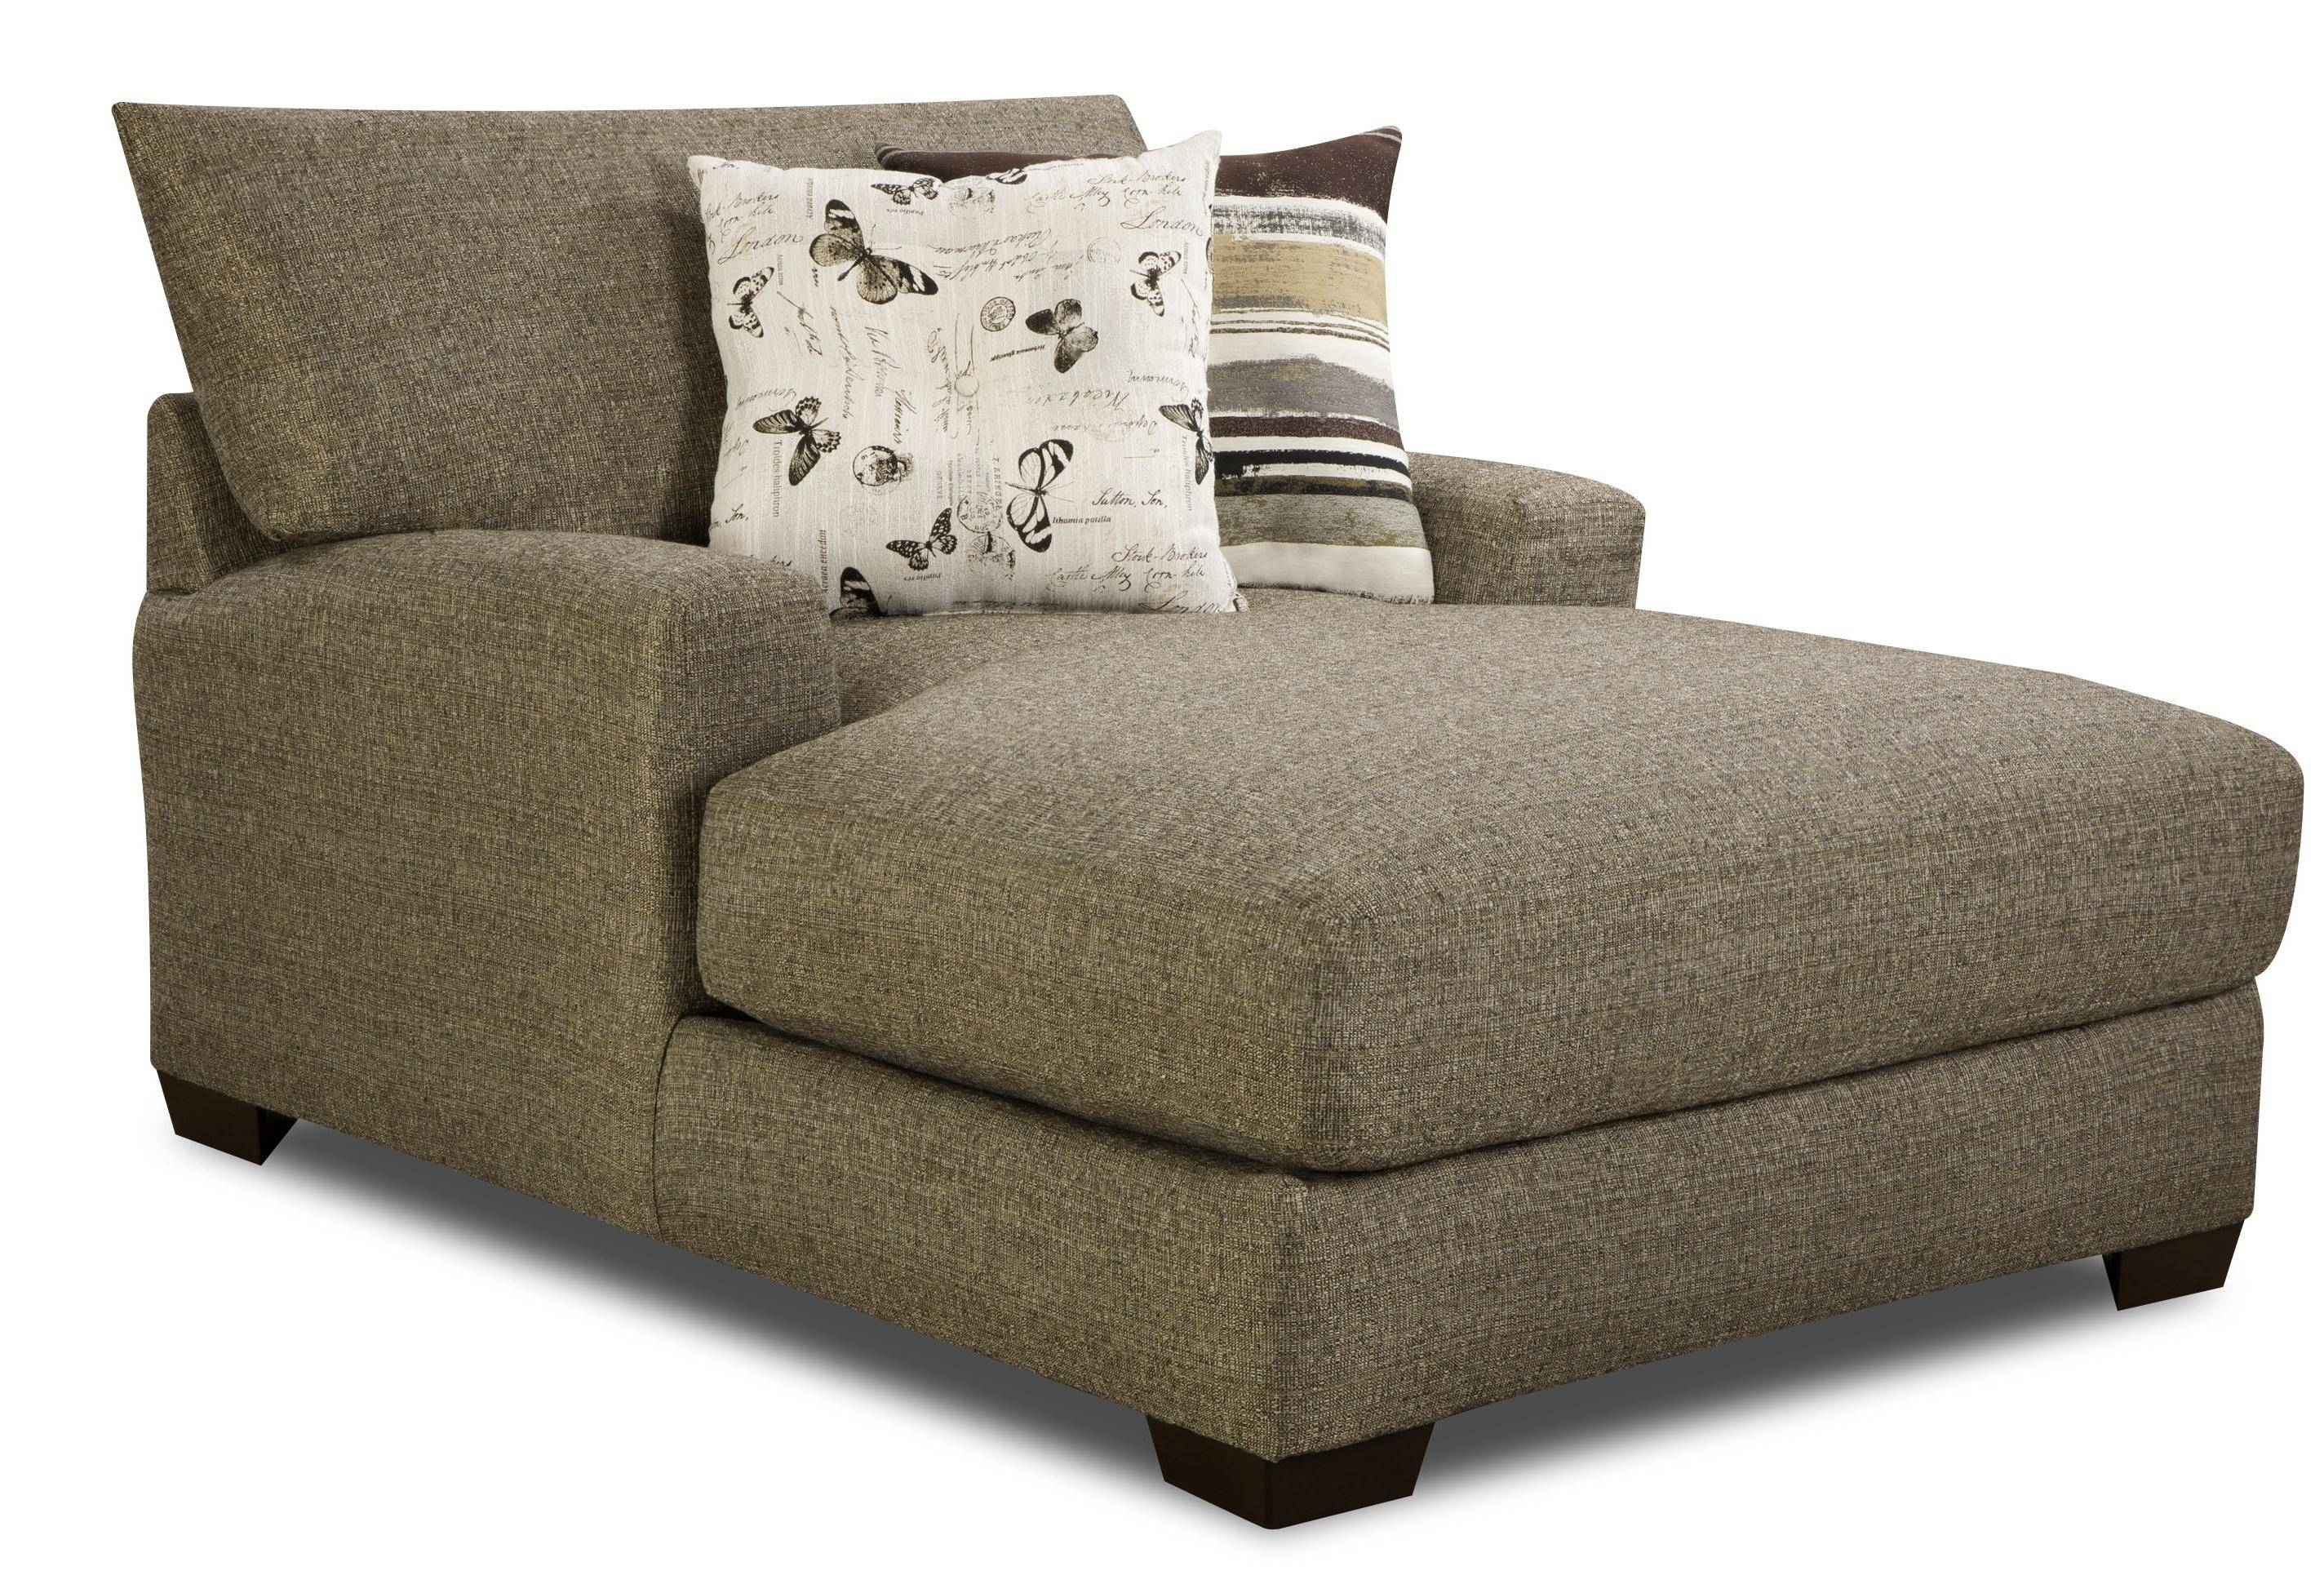 Lounge Sofa Chair - Modern Chairs Quality Interior 2017 intended for Sofa Chairs (Image 18 of 30)